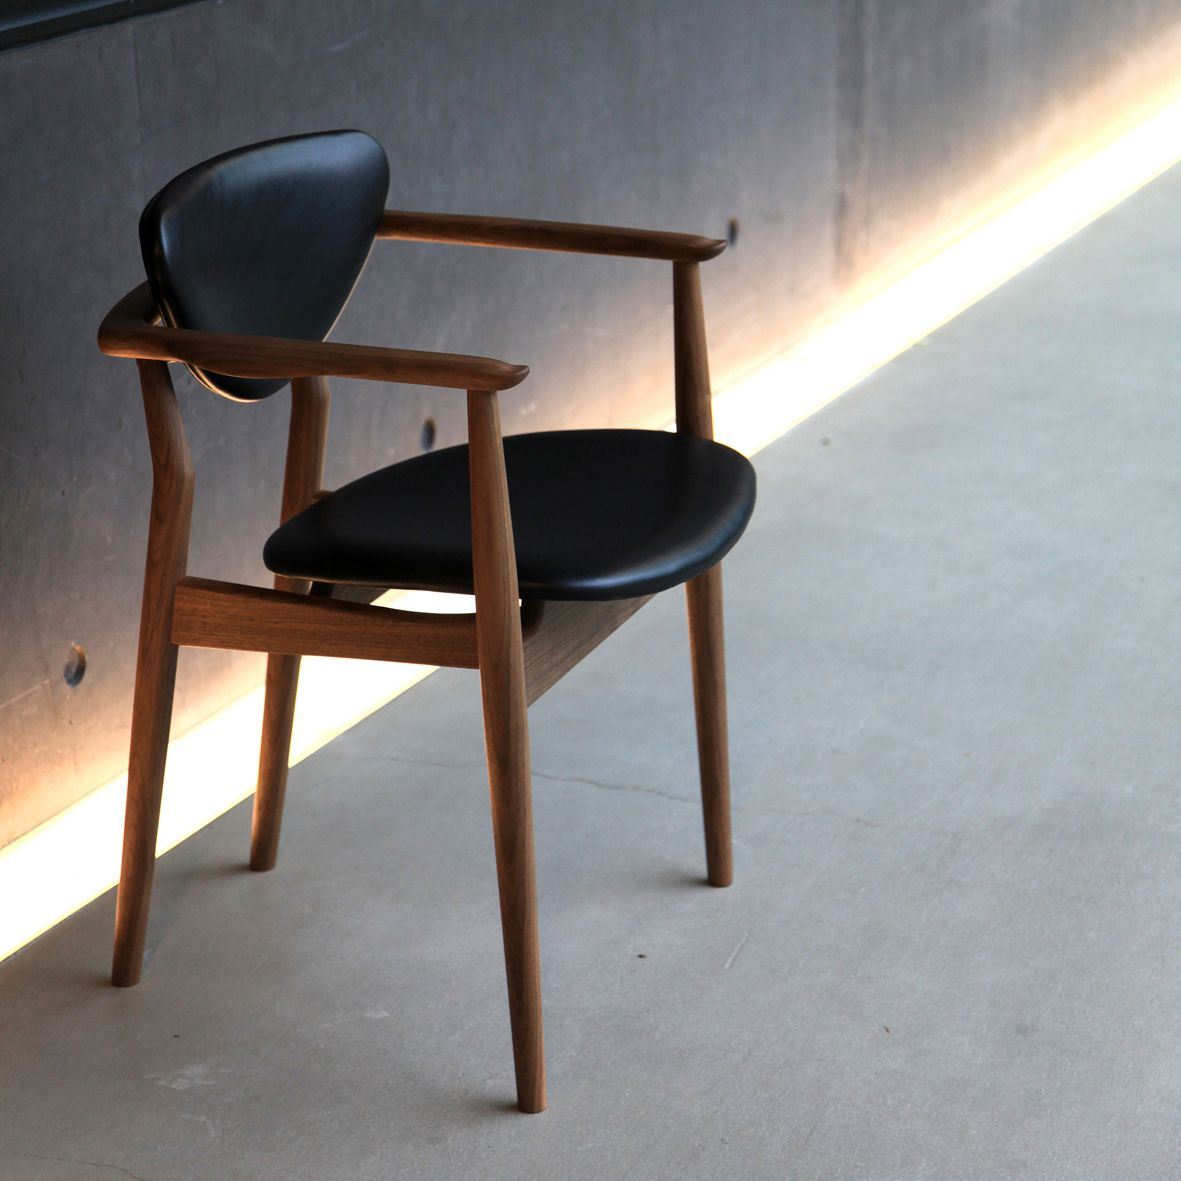 Finn Juhl 109 Chair Designer  Finn Juhl Manufactured by  Onecollection  Dimensions  in  w109 Chair images   House of Finn Juhl   Finn Juhl   Pinterest  . Finn Juhl Chair 108. Home Design Ideas